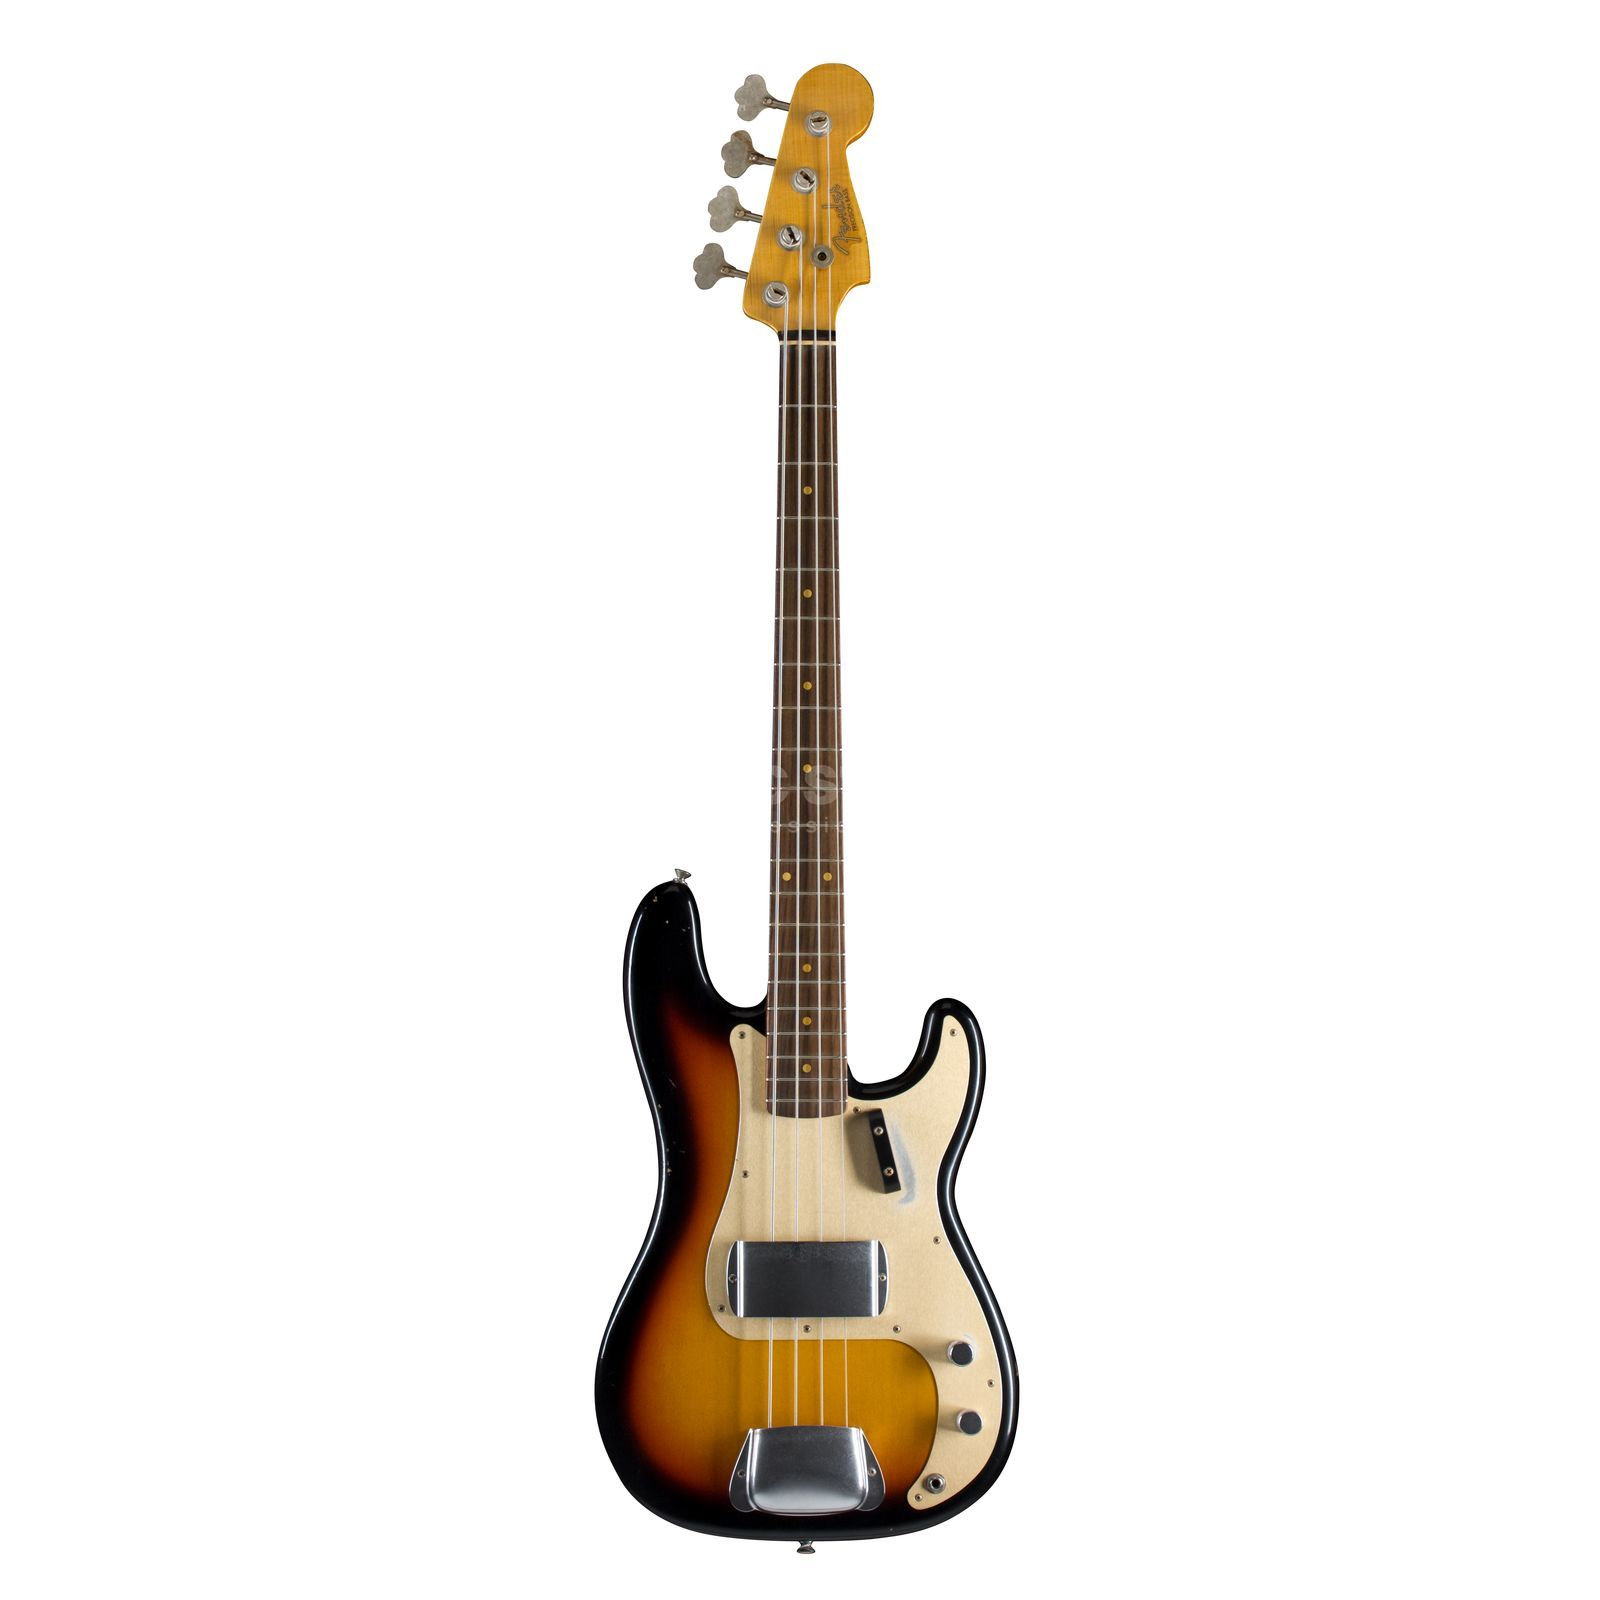 Fender CS '59 P-Bass Journeyman Relic Faded 3-Tone-SB, S#:R79308 Изображение товара